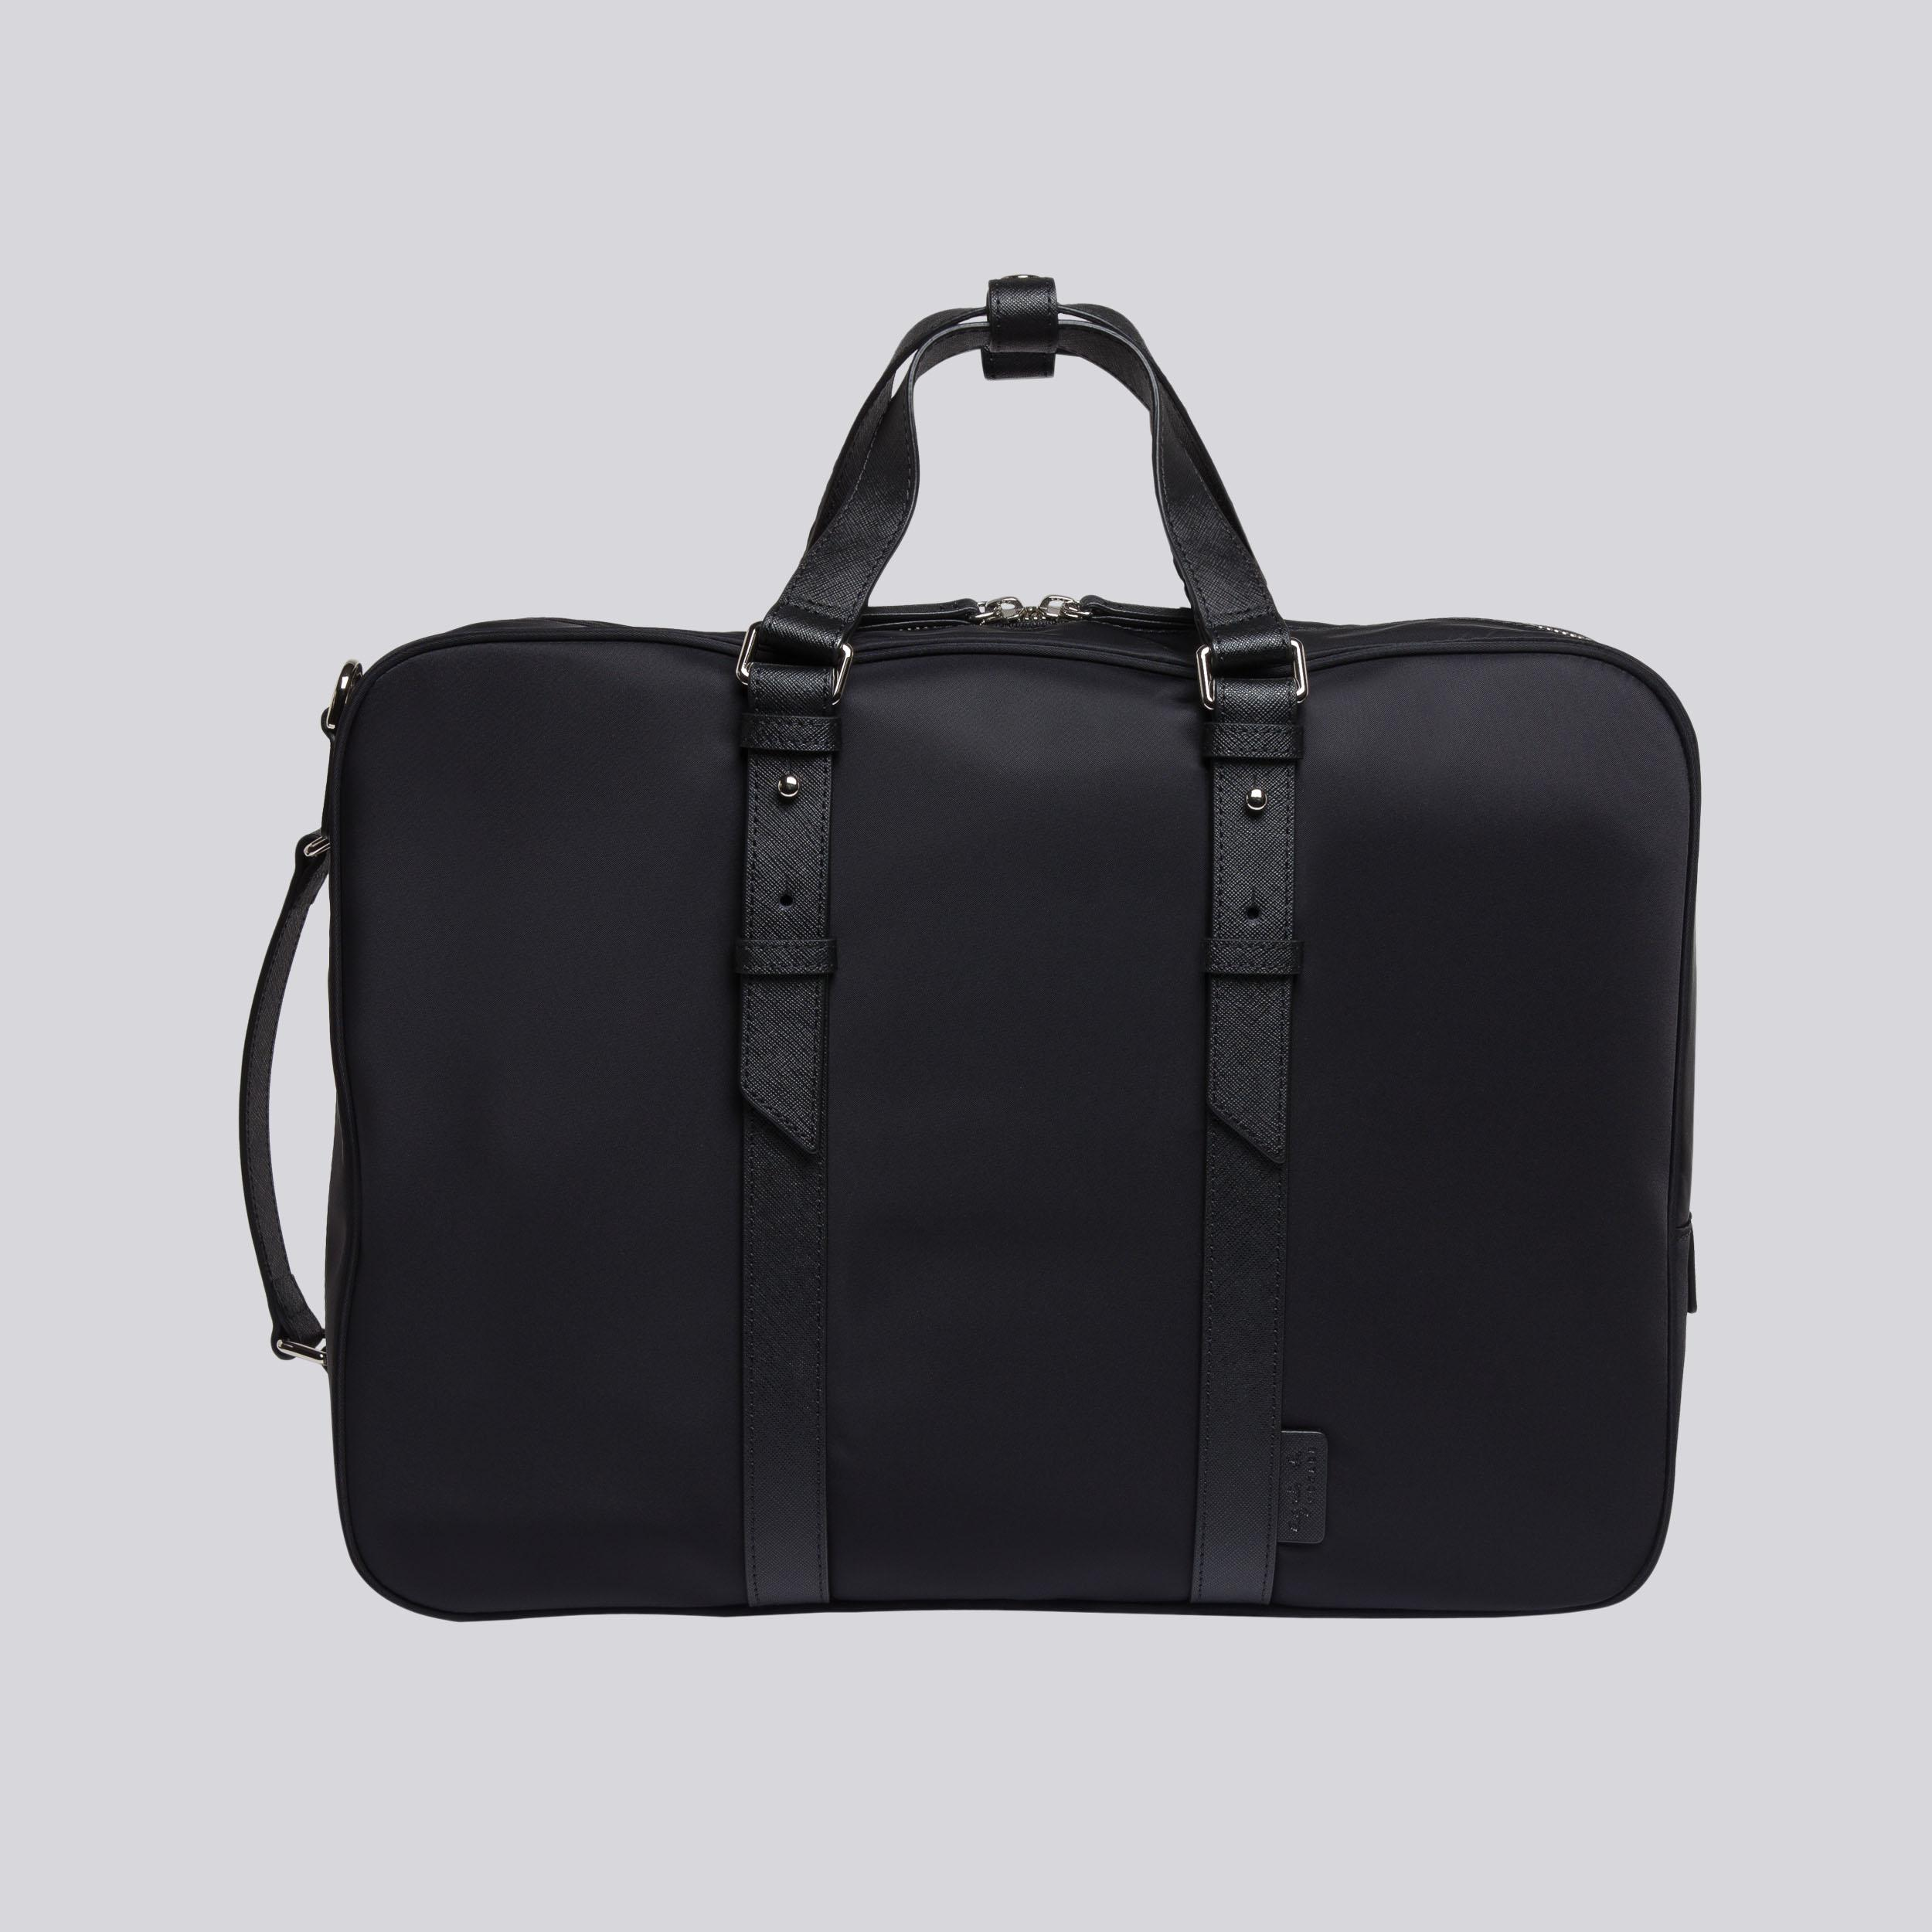 c38951fa194d Lyst - agnès b. Black Briefcase Convertible To Rucksack in Black for Men